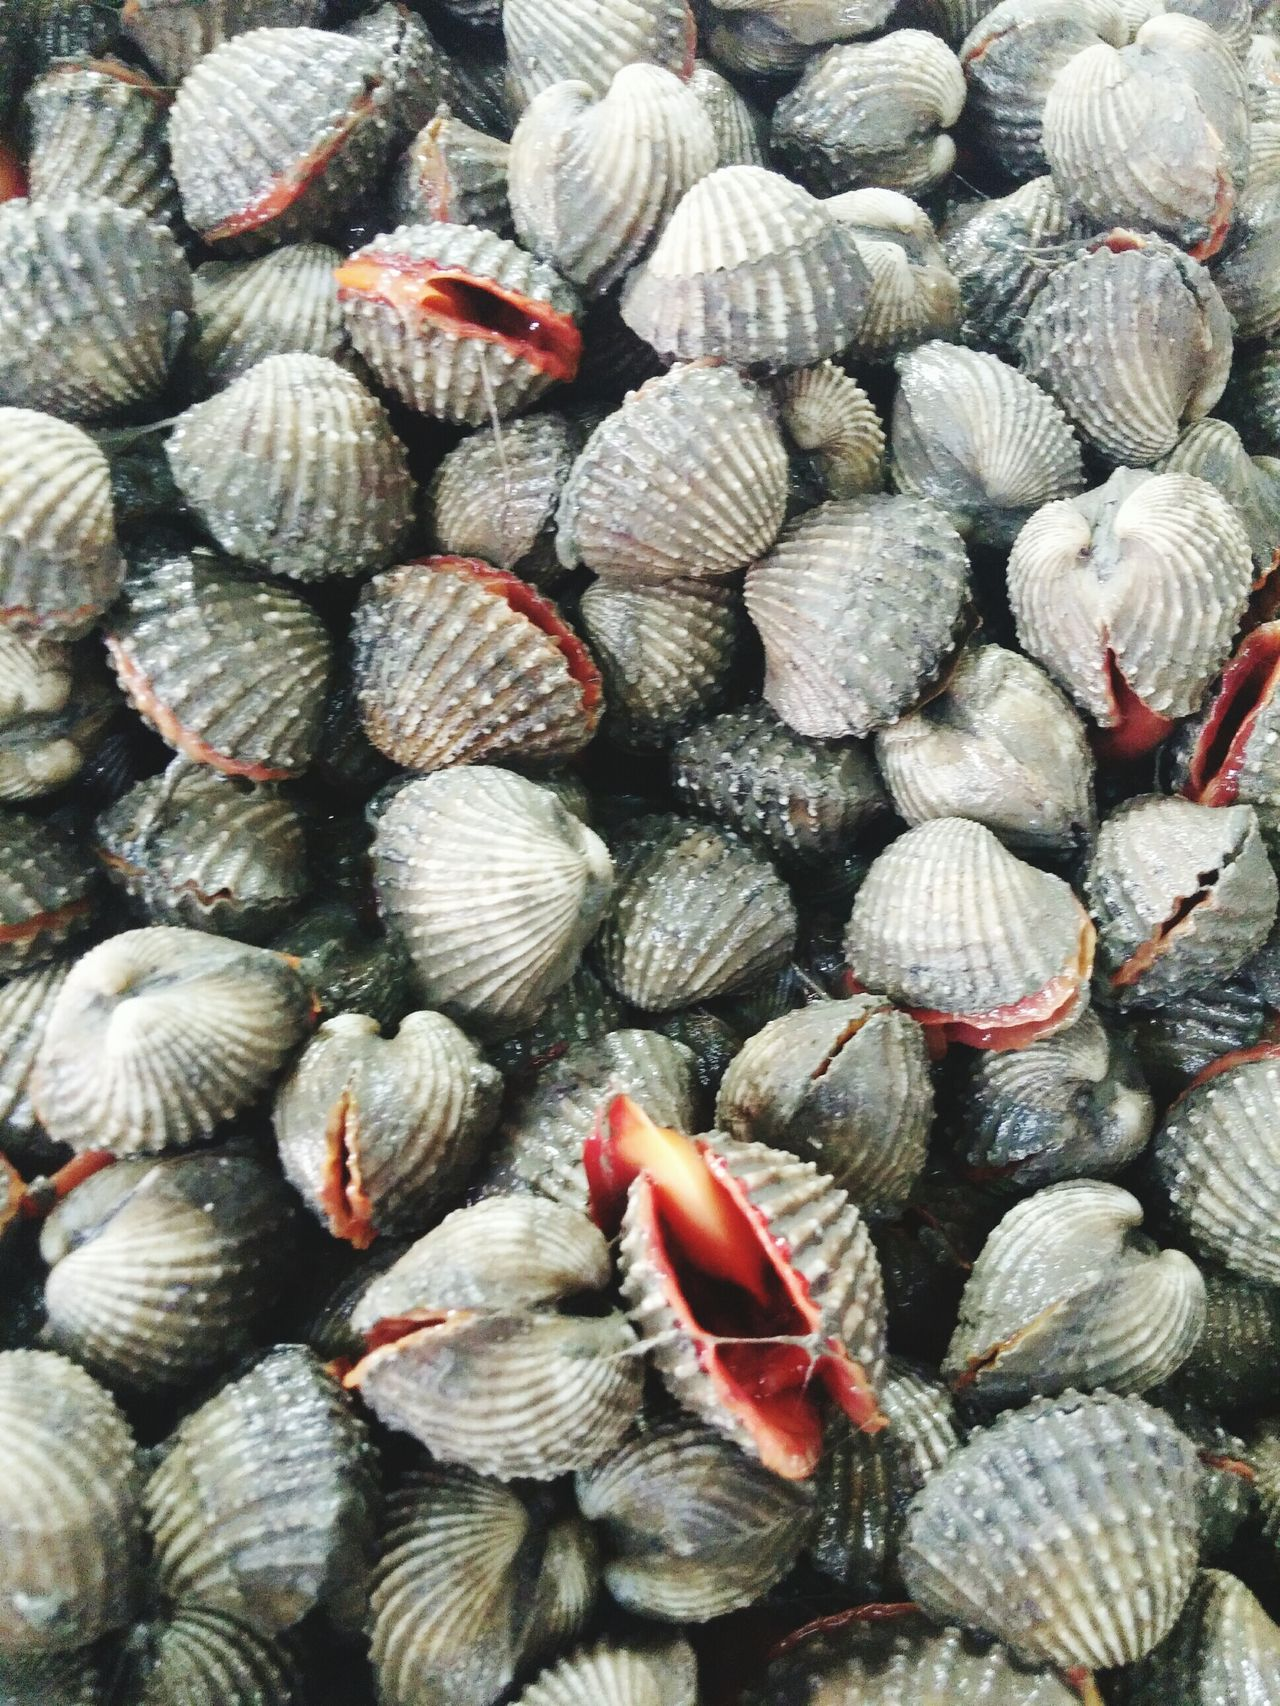 Fresh Cockles Seafoodfound in a Nan Market, Northeast Thailand.